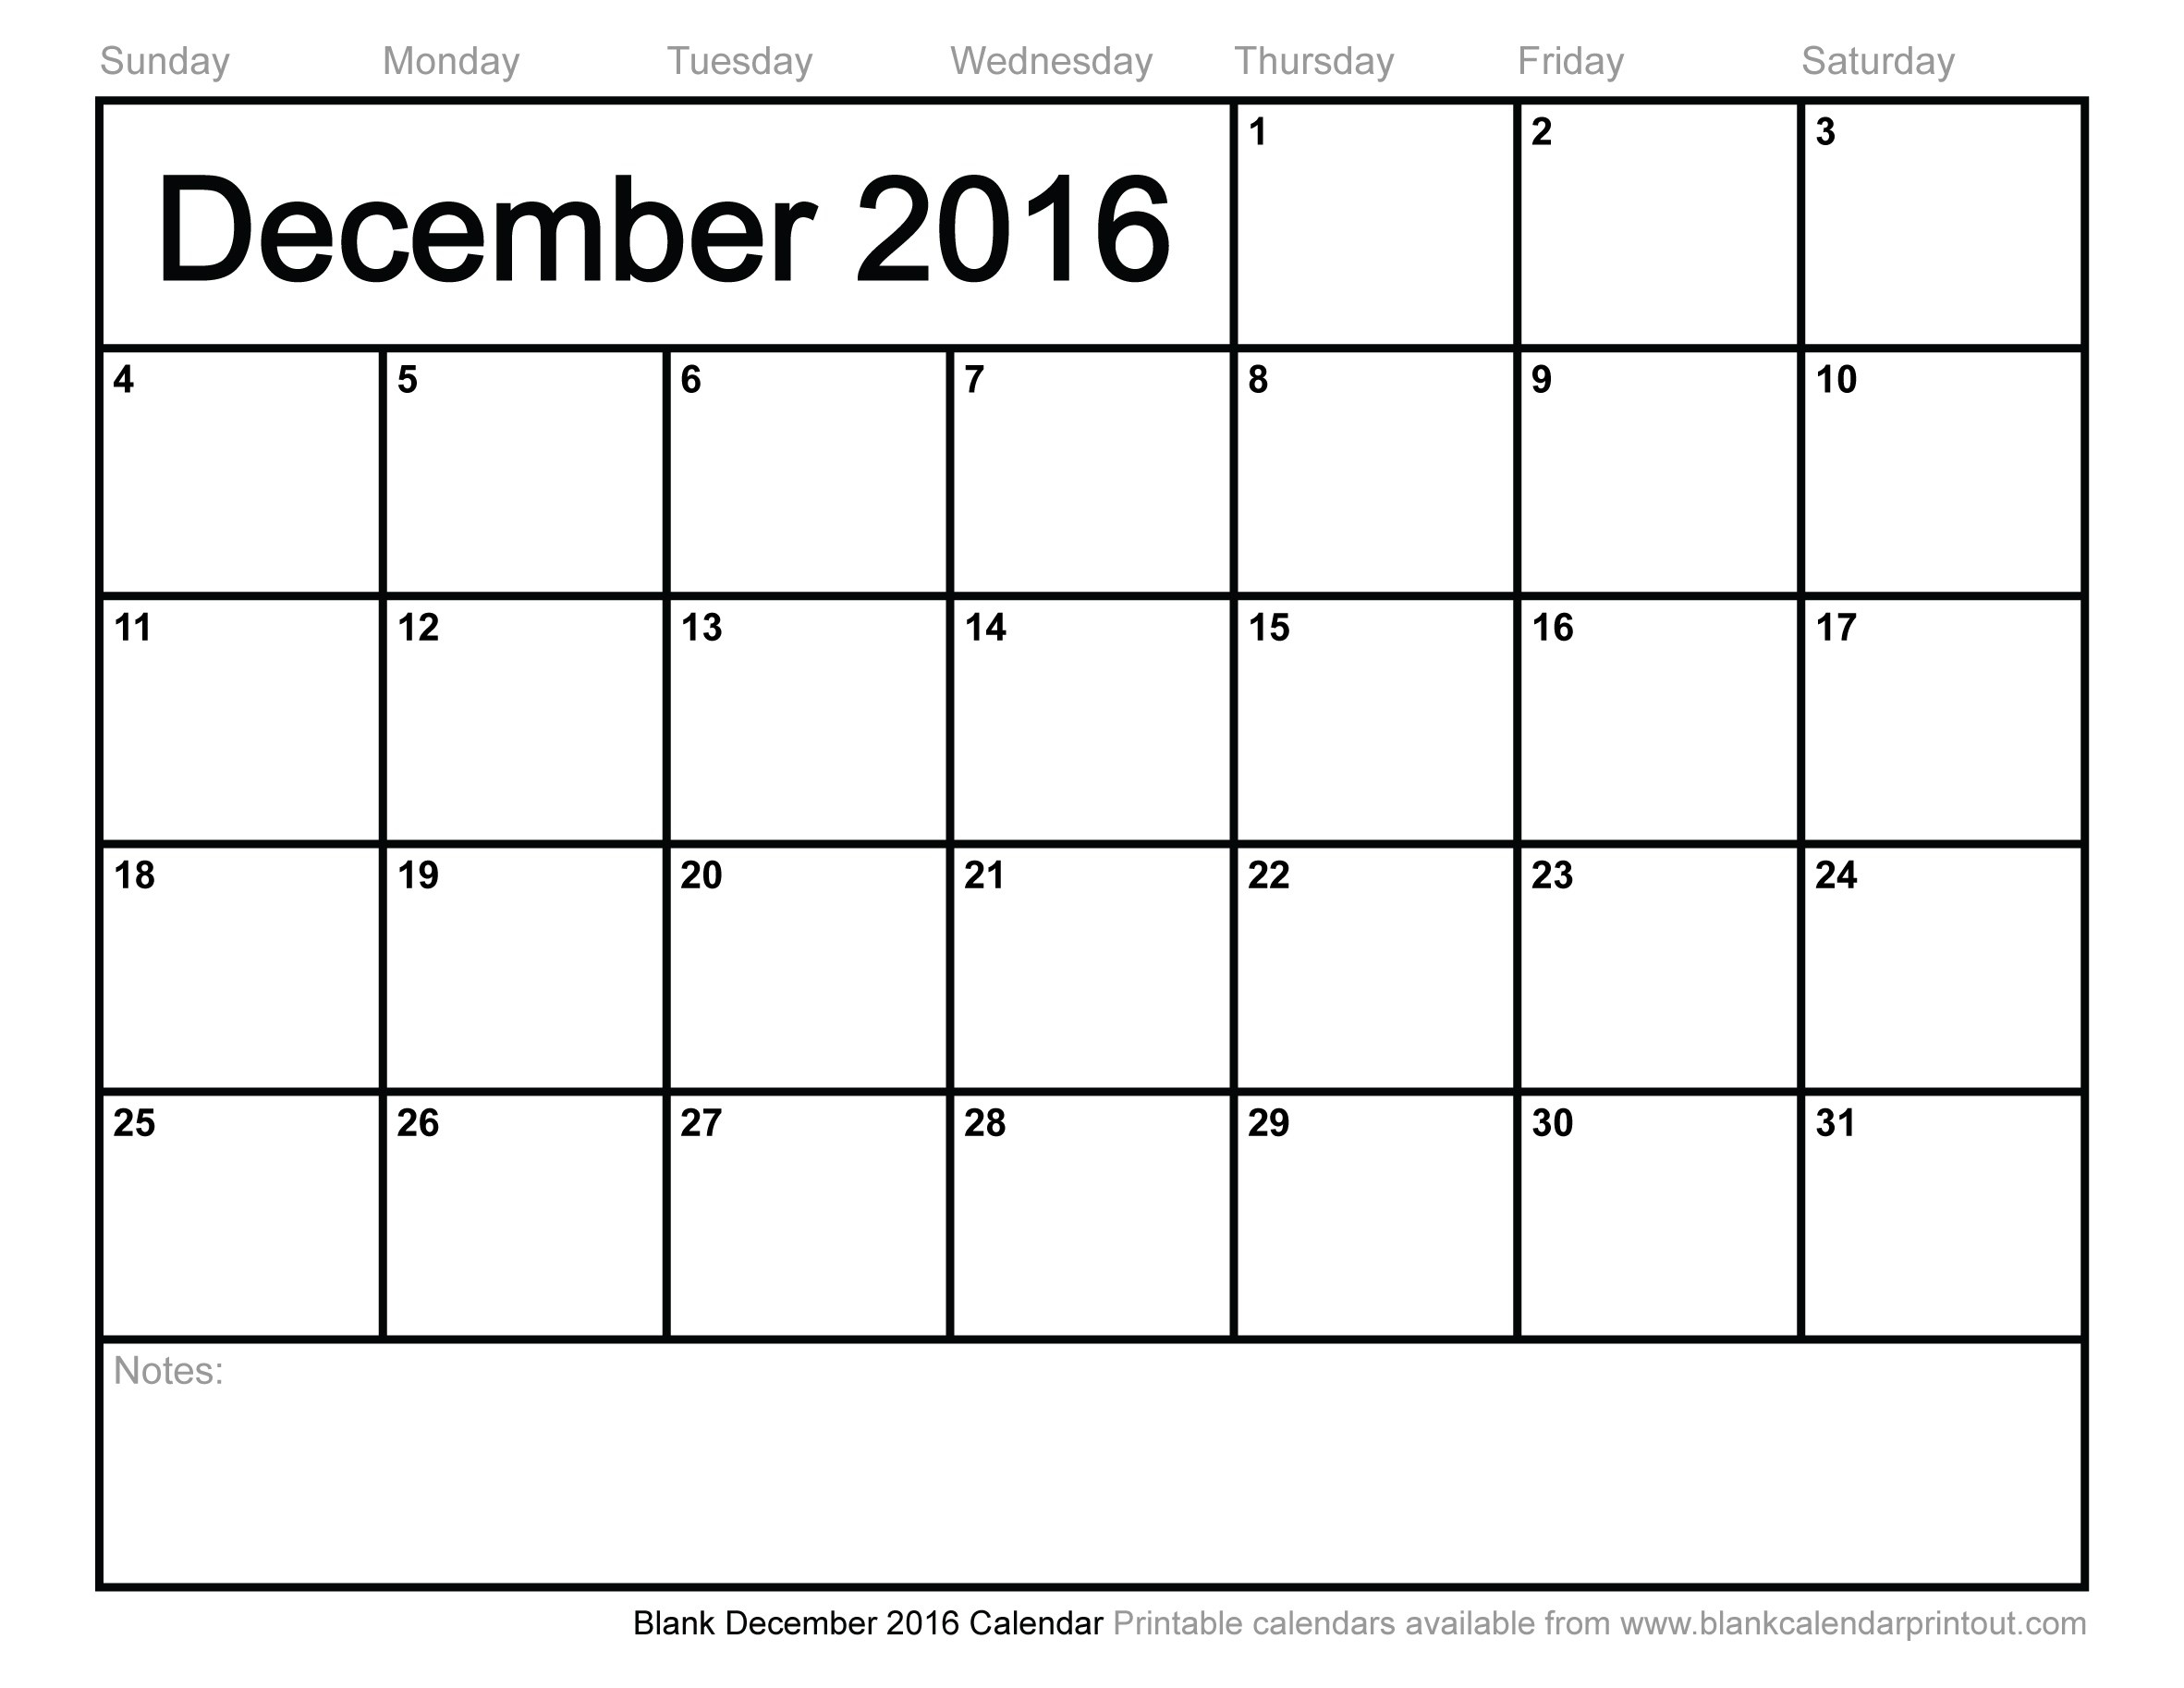 Blank Calendar December 2016 And January 2017 | Free Calendar Grid 2015 pertaining to Blank Printable Calendar December